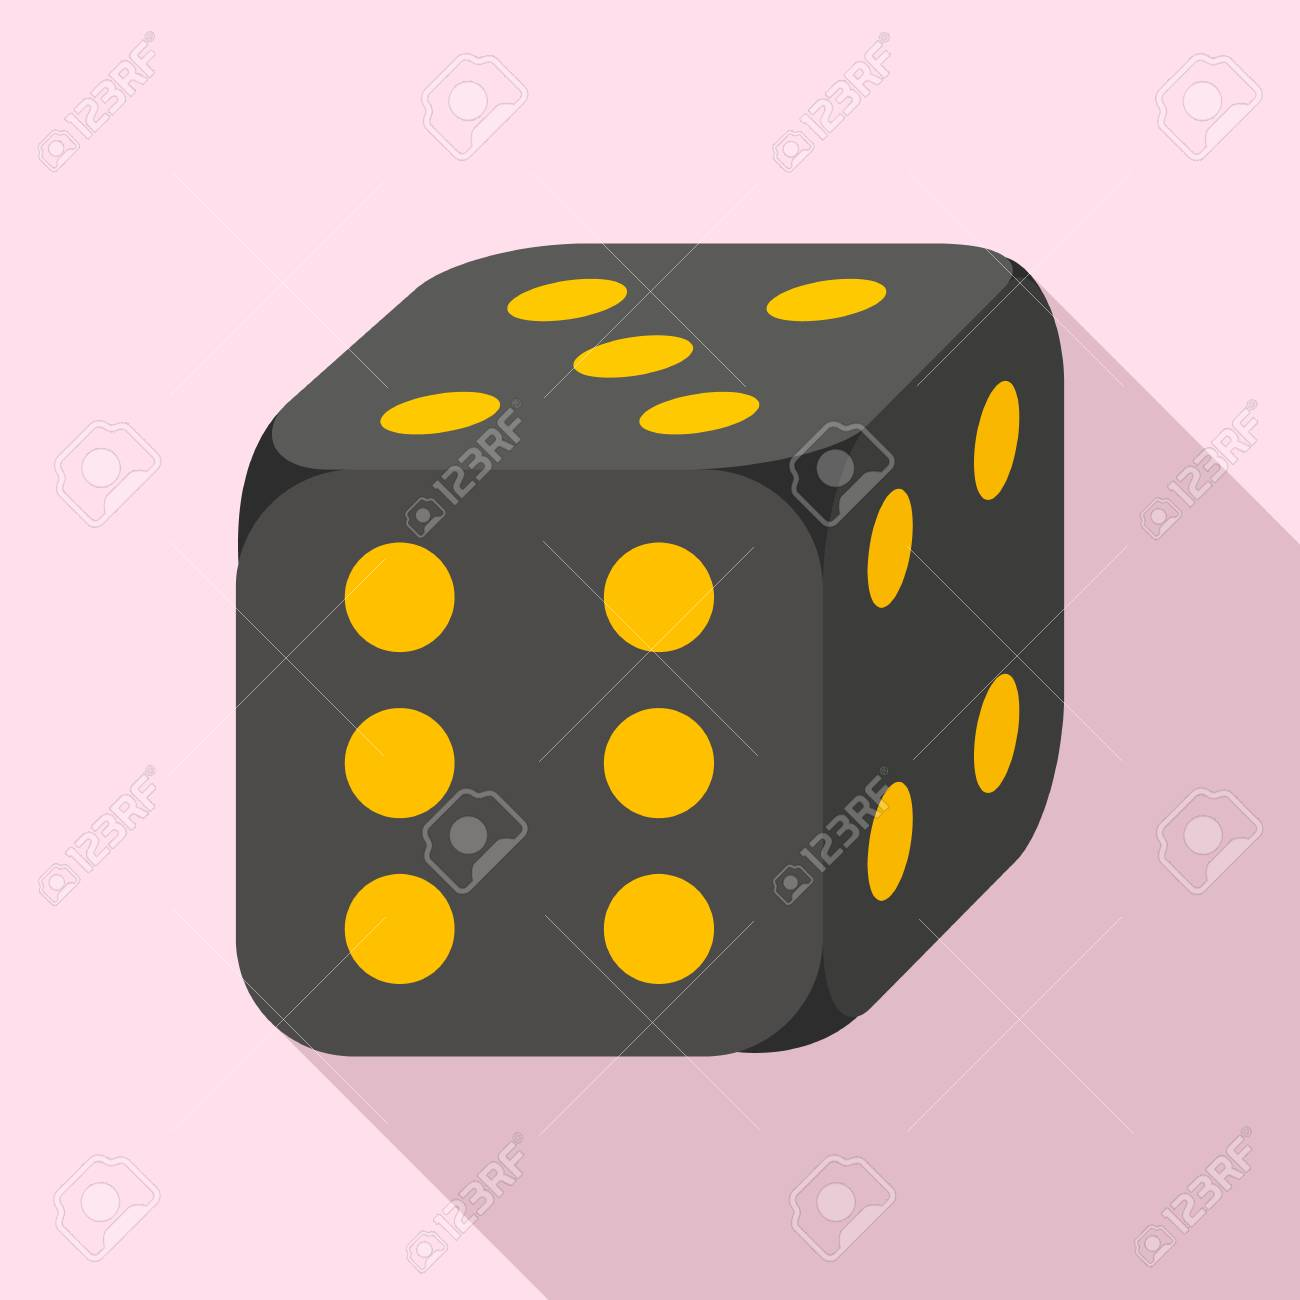 Lucky dice icon, flat style